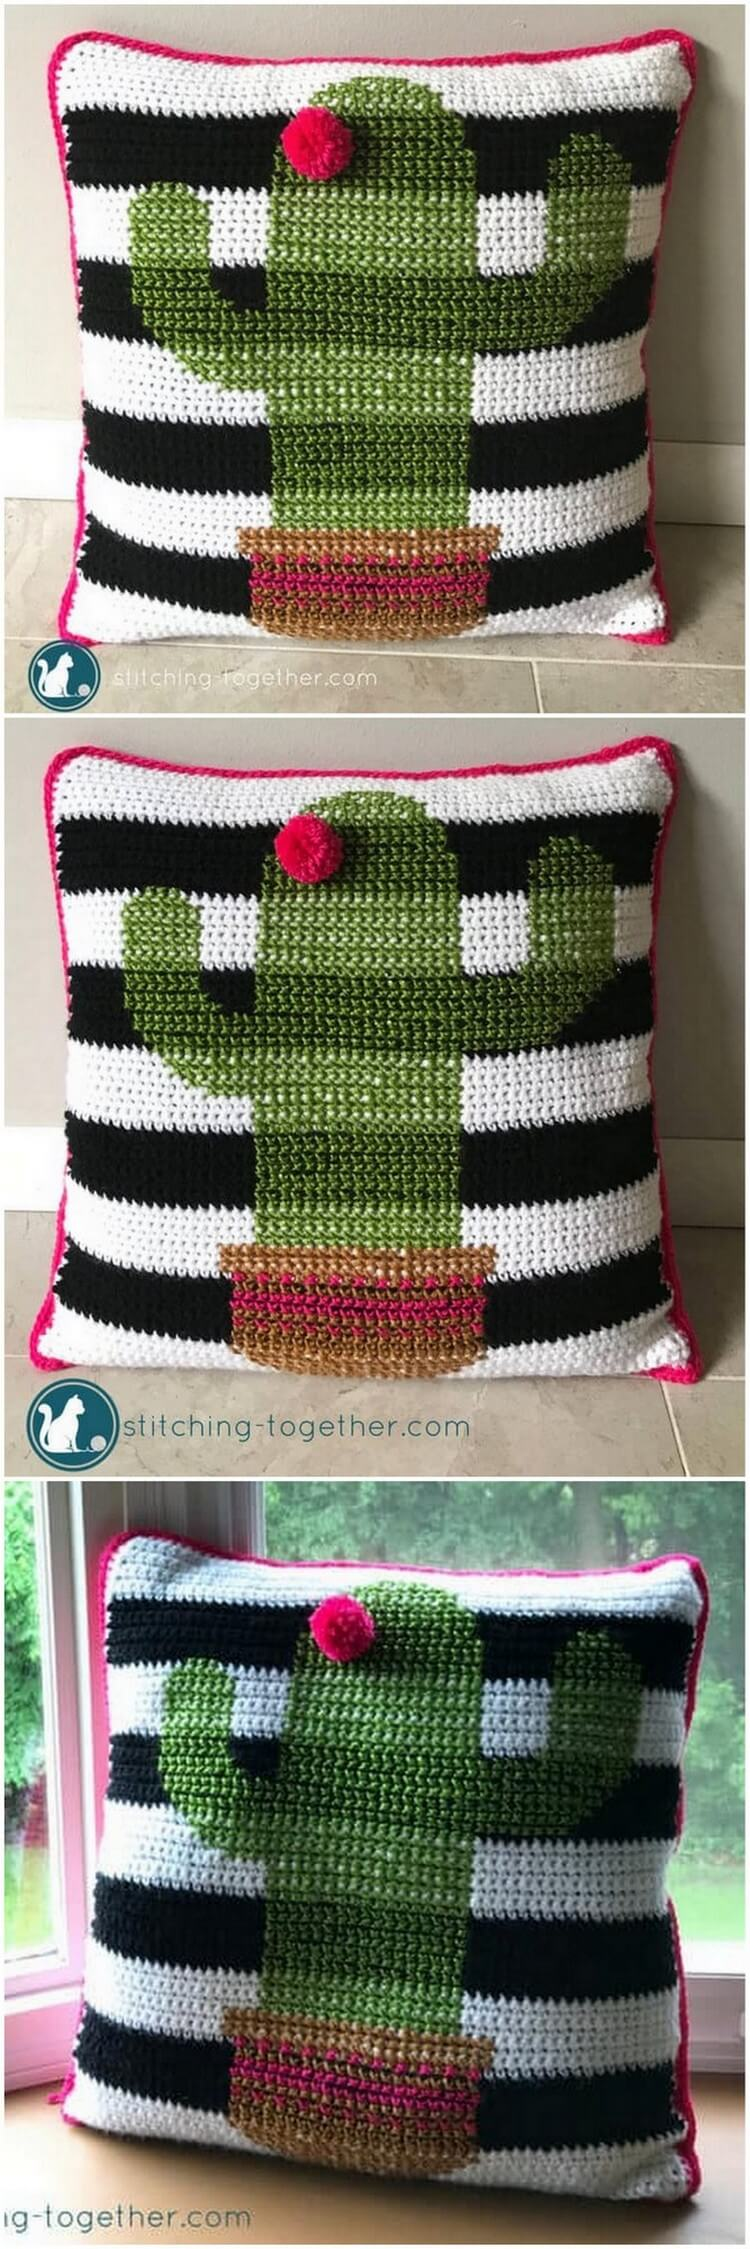 Crochet Pillow Pattern (31)